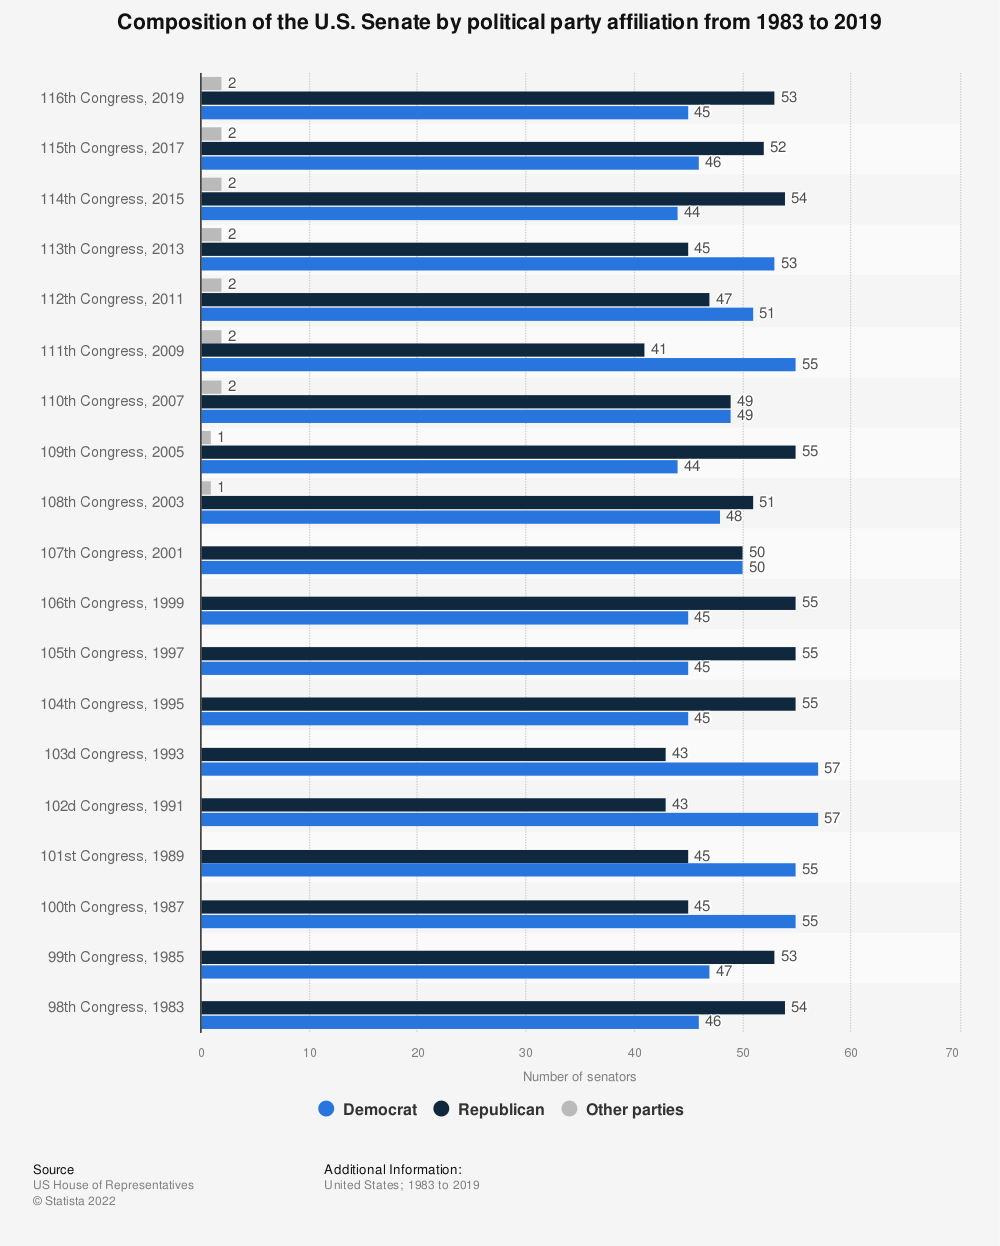 Statistic: Composition of the U.S. Senate by political party affiliation from 1983 to 2019 | Statista